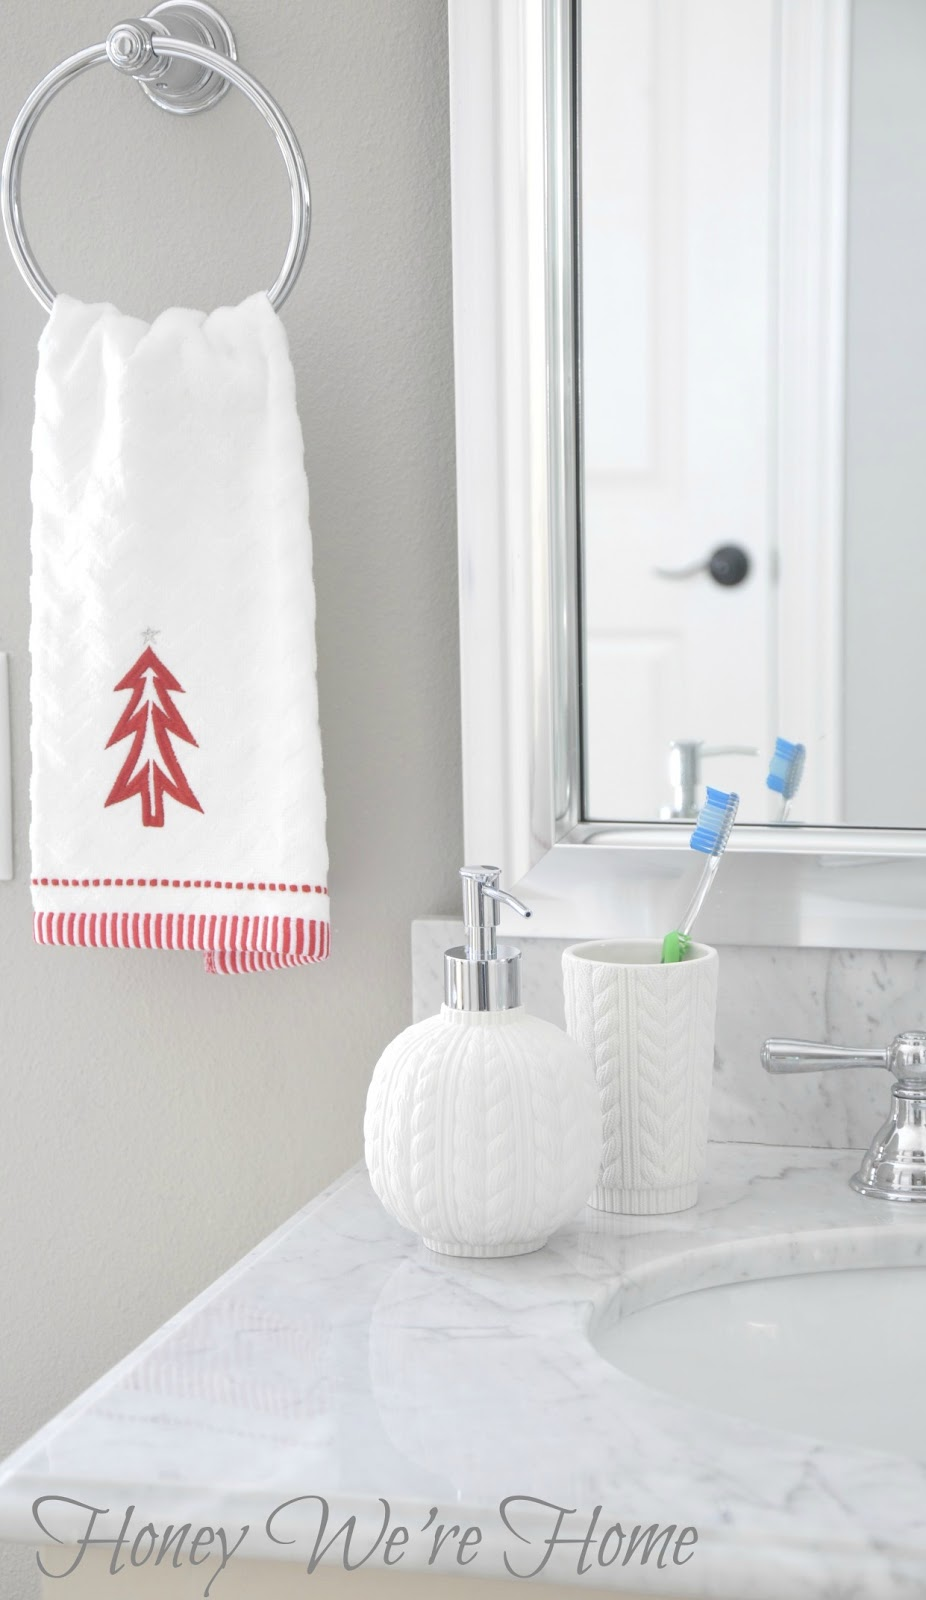 Target Holiday Accessories In The Bathroom Honey We Re Home